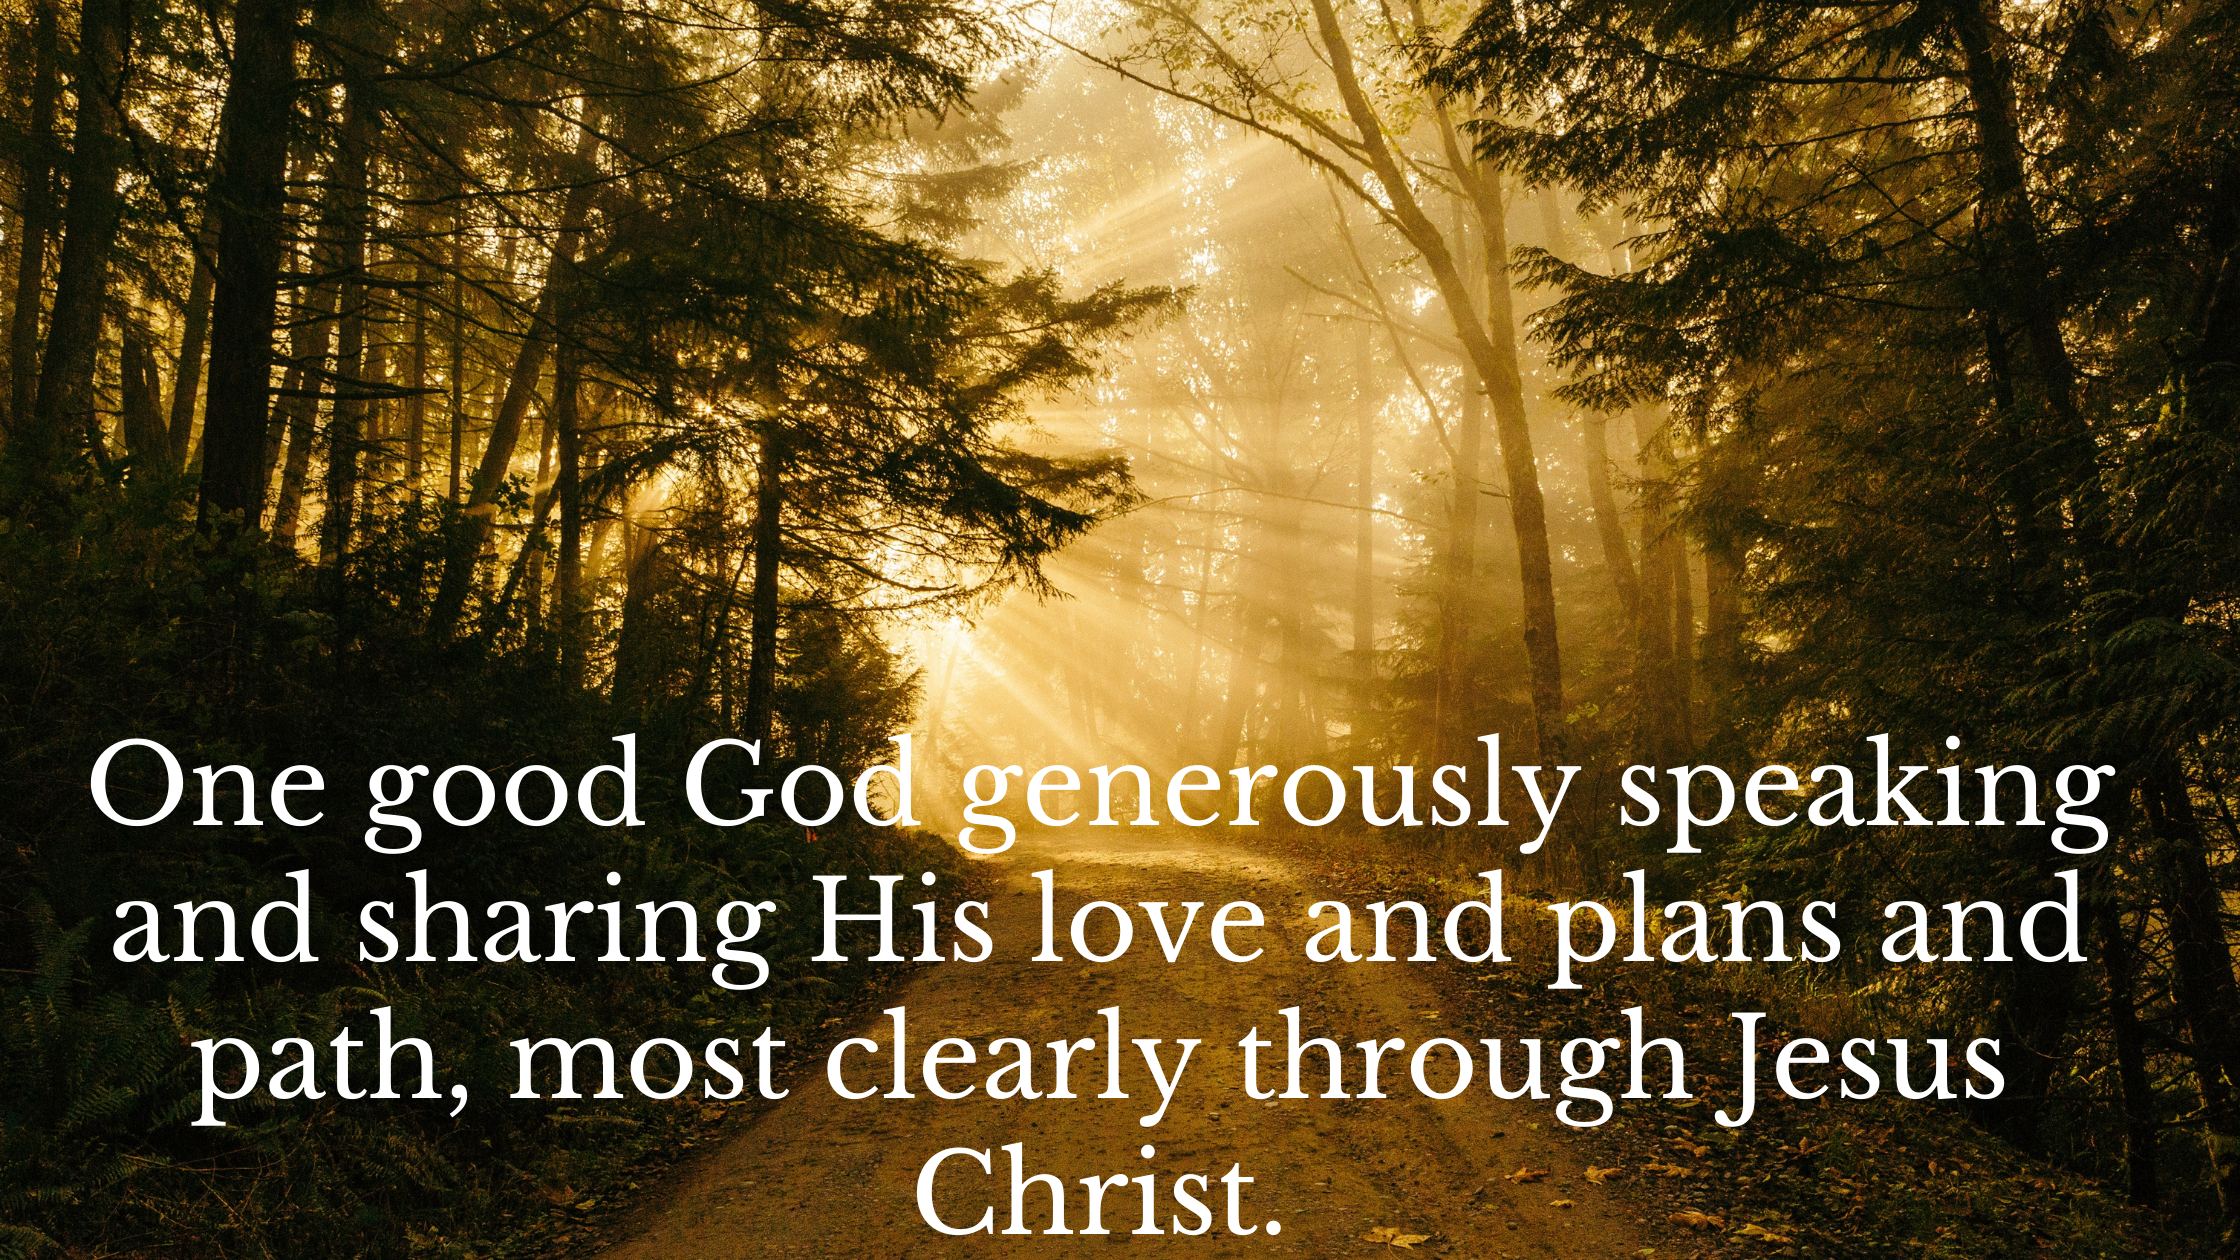 One good God generously speaking and sharing His love and plans and path, most clearly through Jesus Christ.